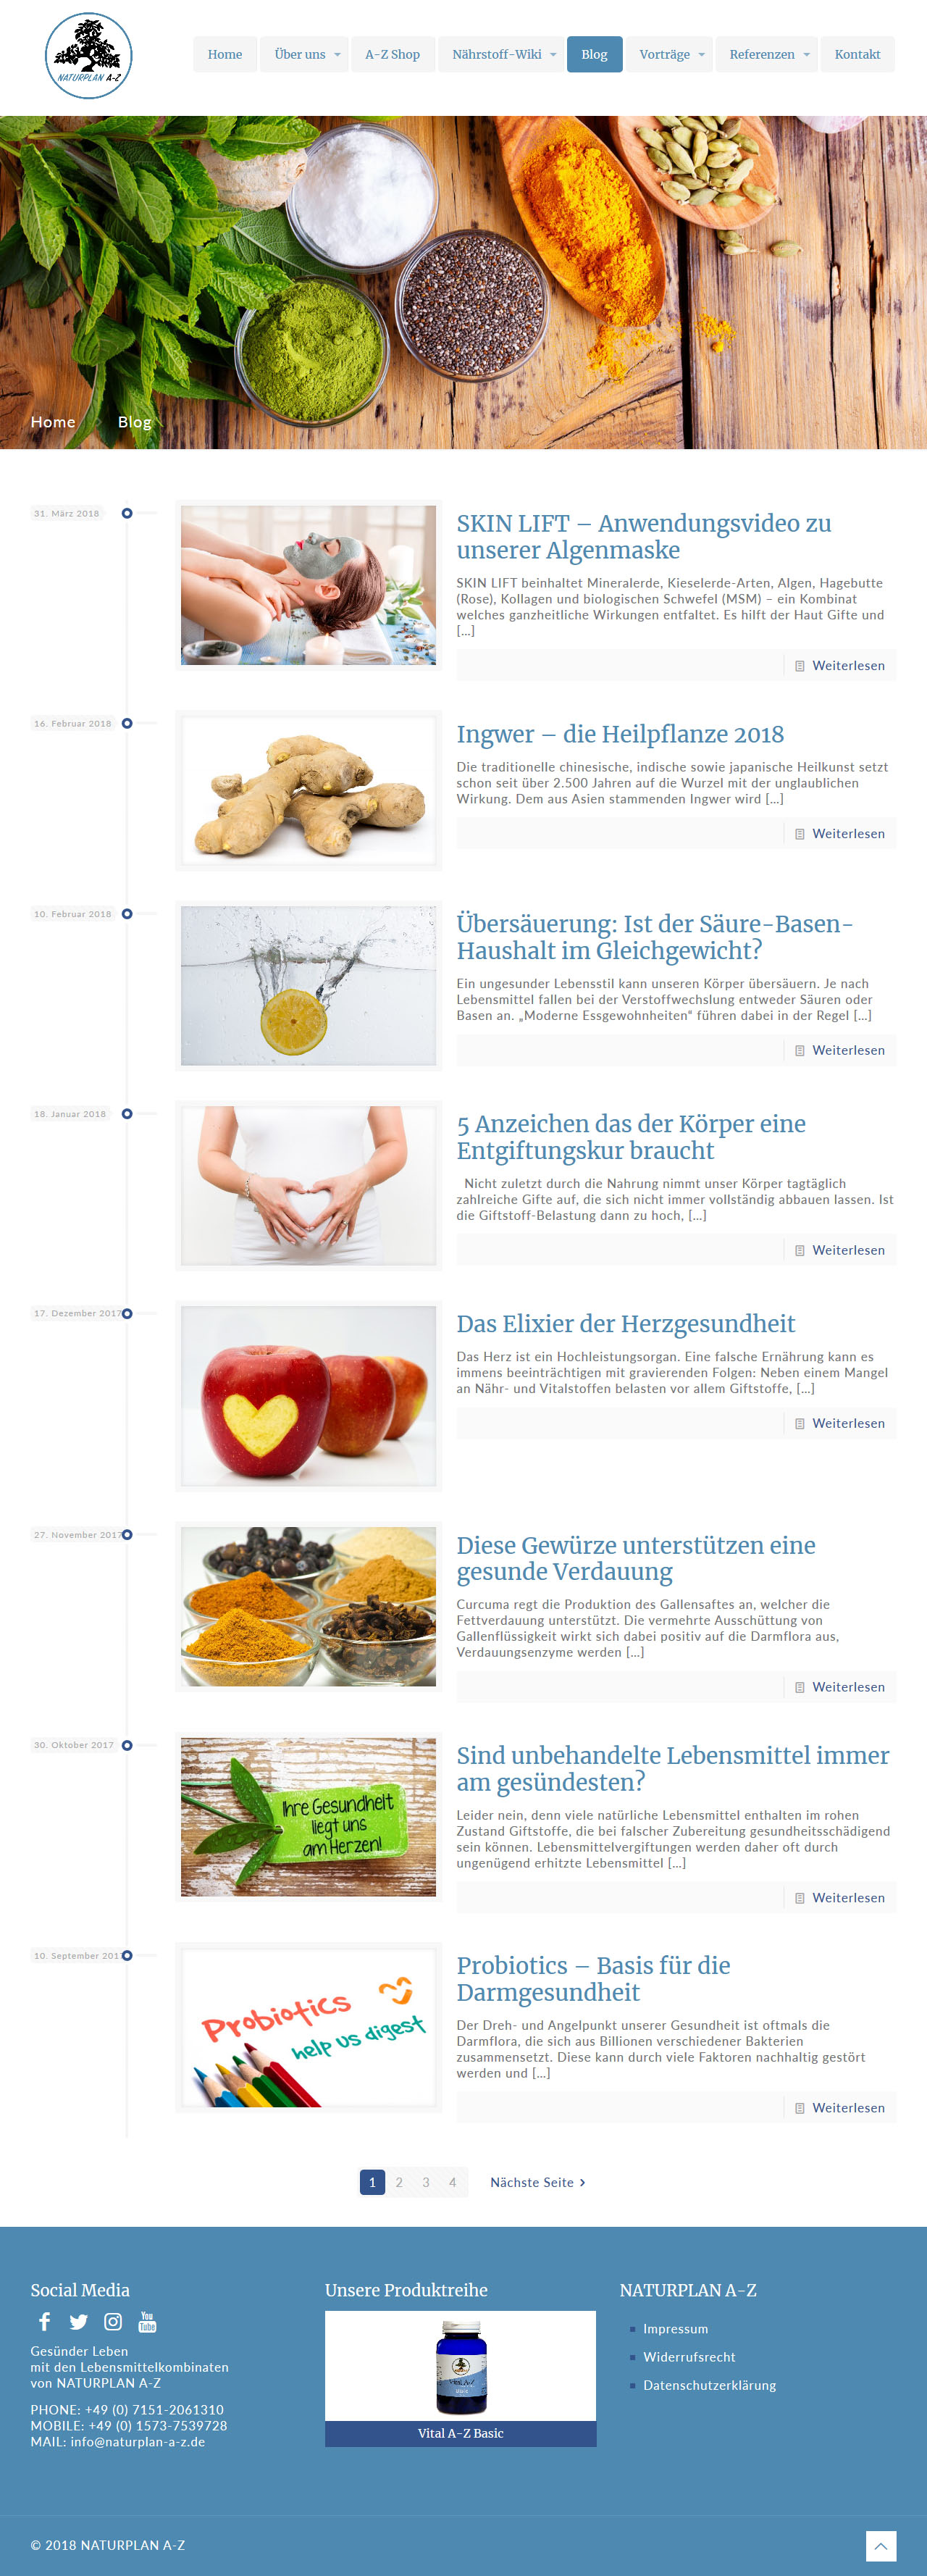 Bild: Website 'naturplan-a-z.de' - Ansicht Desktop _ Page »Blog«